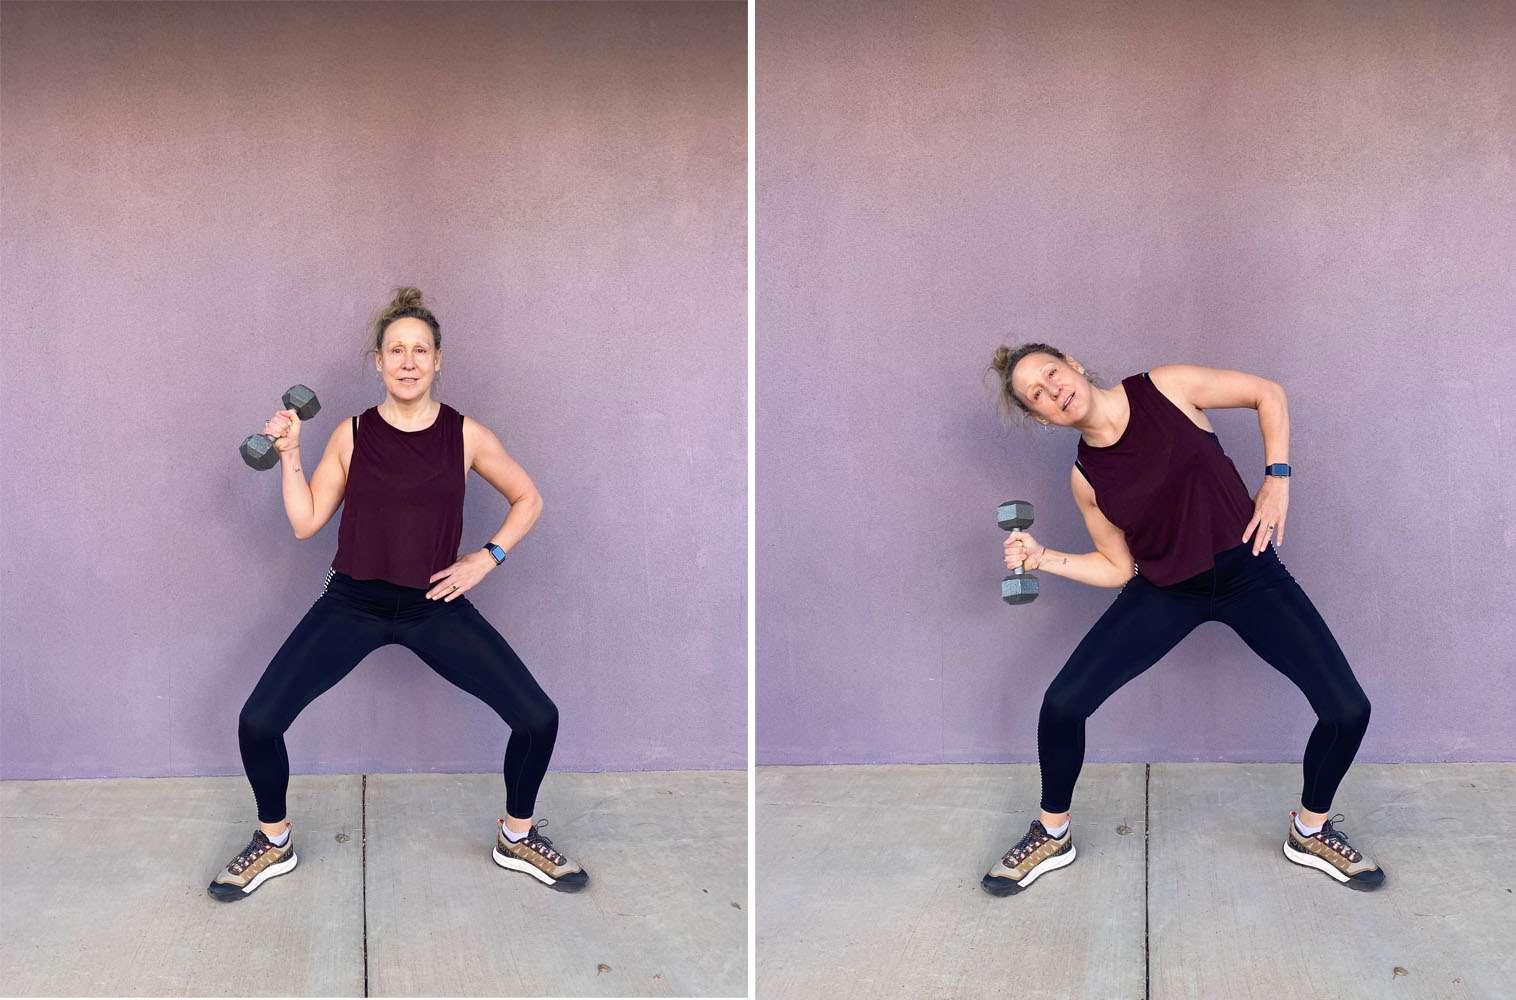 Sumo squat Oblique crunch with weights